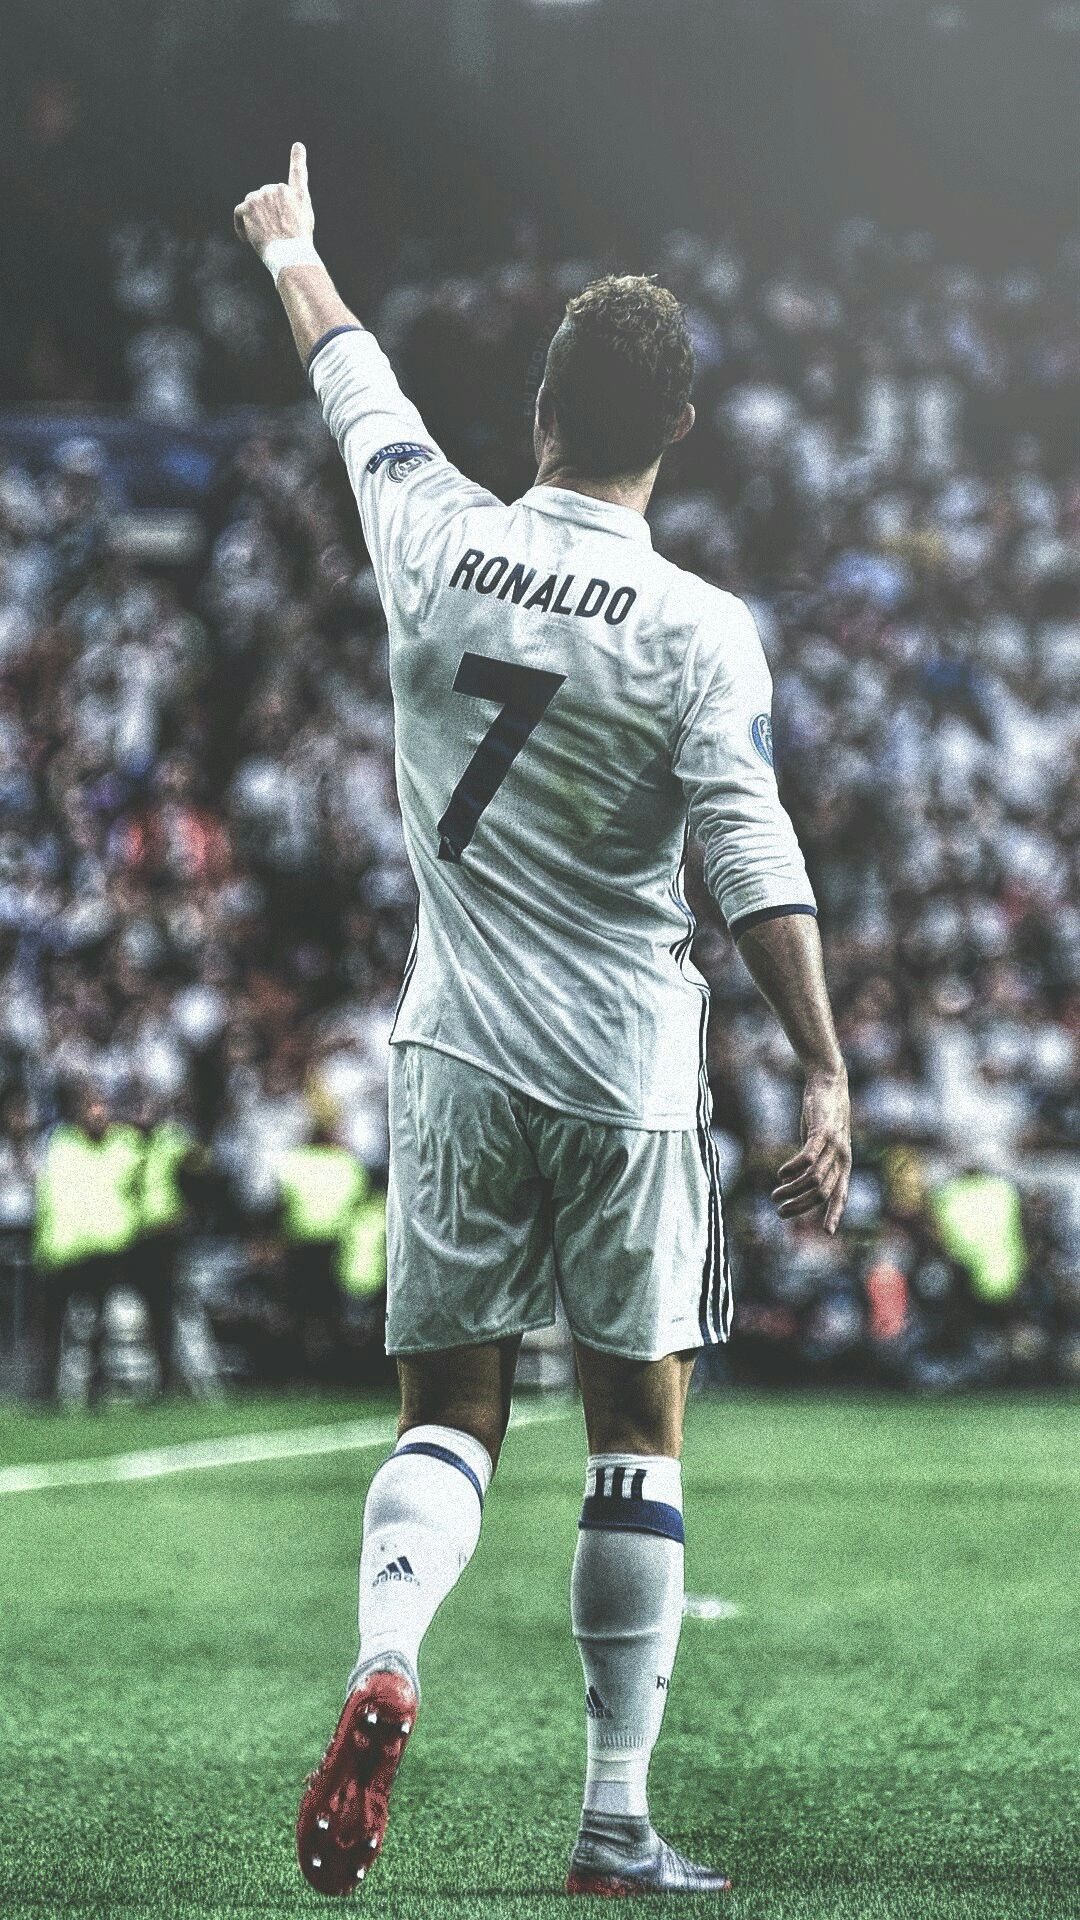 Cool Cristiano Ronaldo Wallpaper Posted By Zoey Johnson